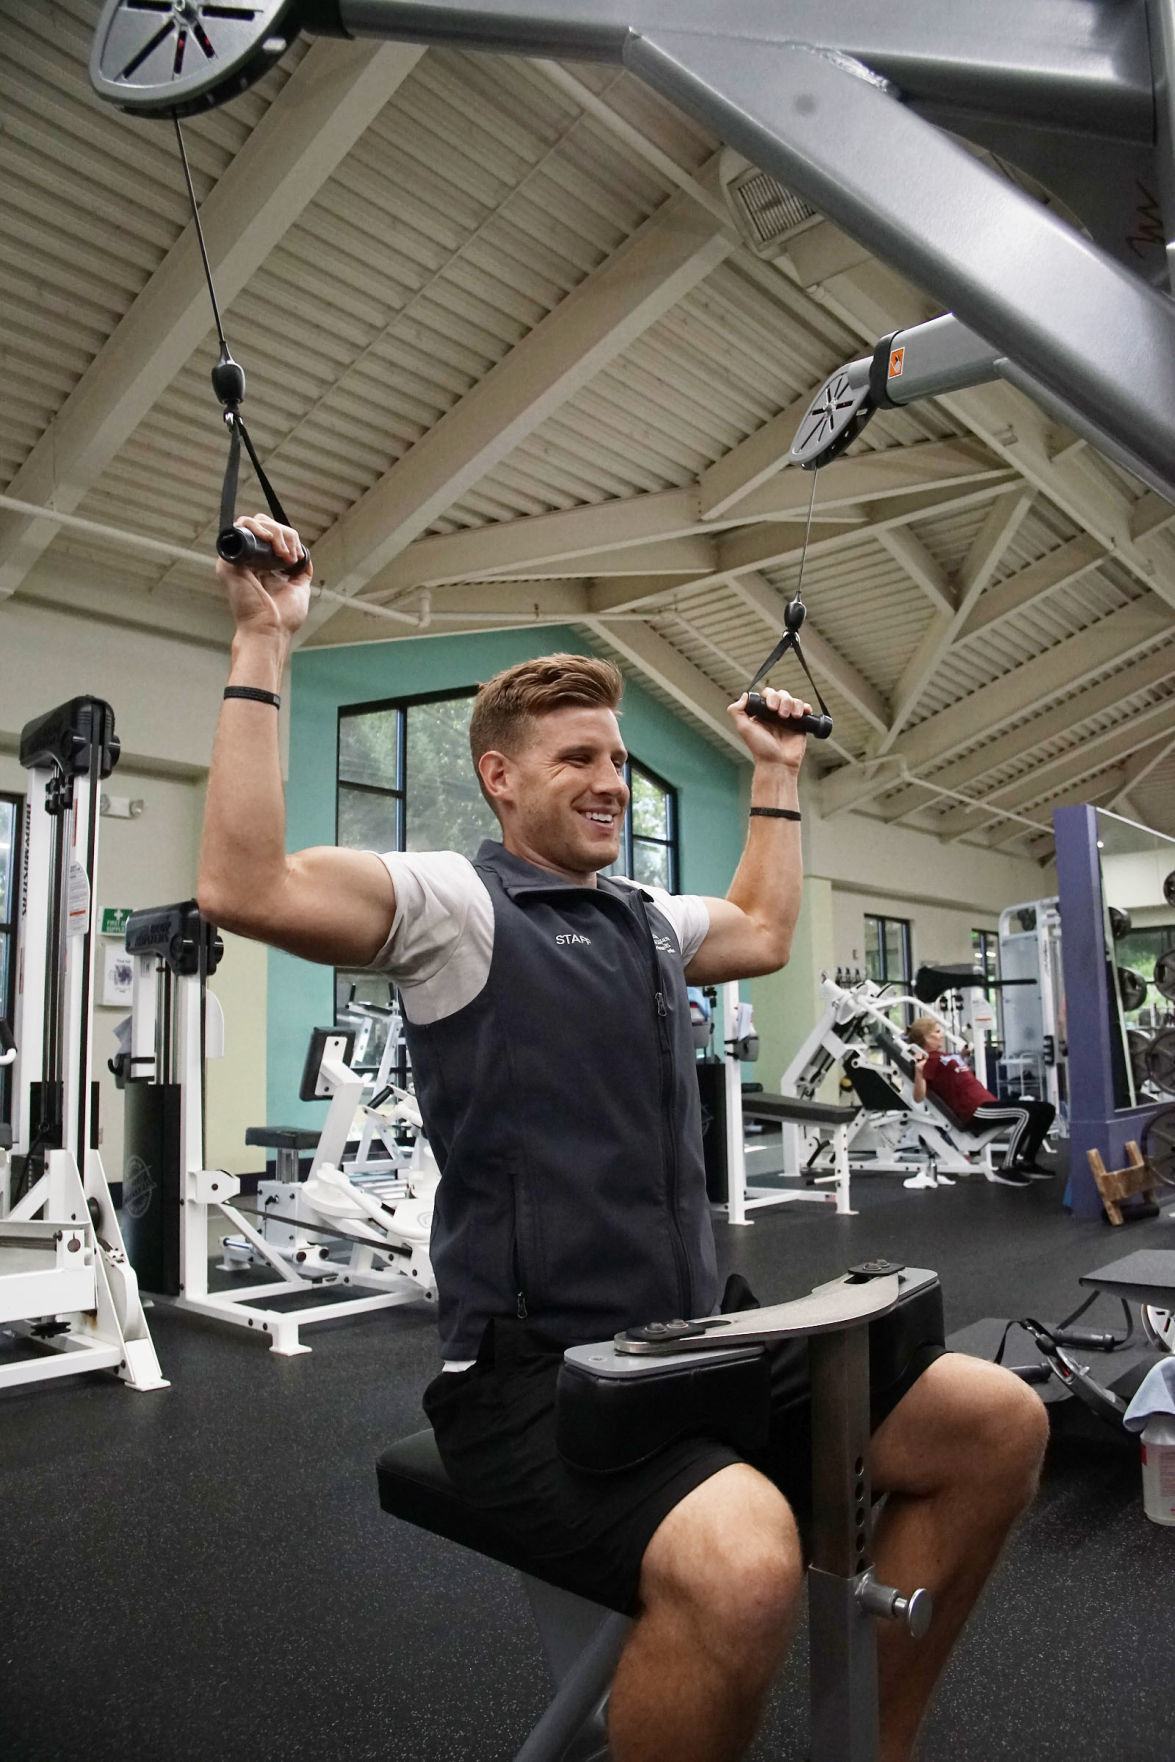 Resistance training at least twice a week builds bones, reduces blood pressure